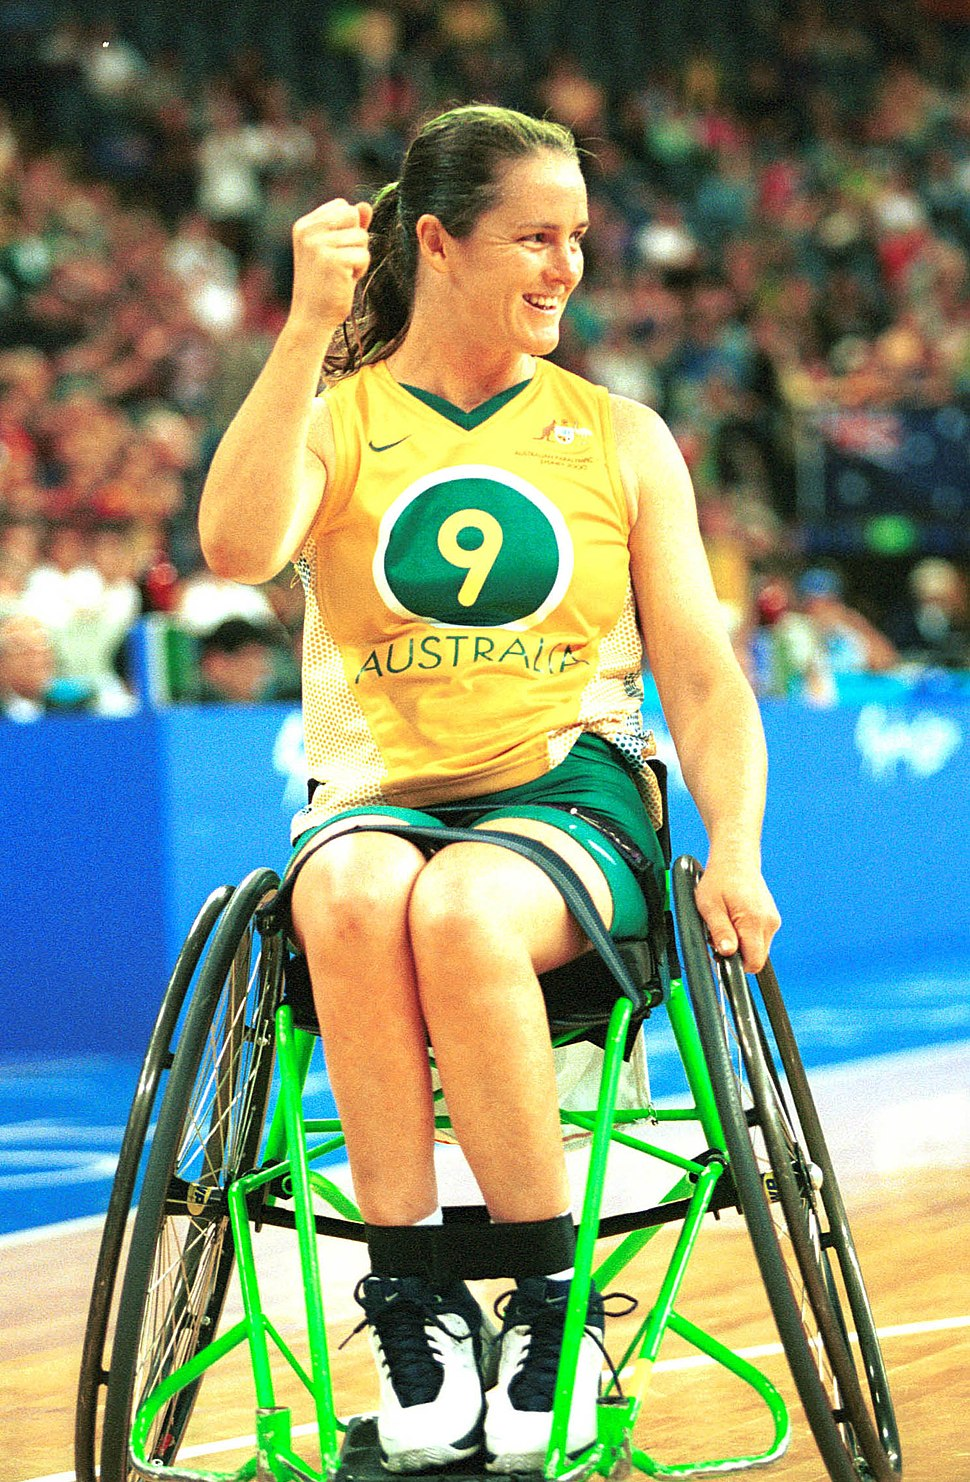 141100 - Wheelchair basketball Liesl Tesch stoked 2 - 3b - 2000 Sydney match photo